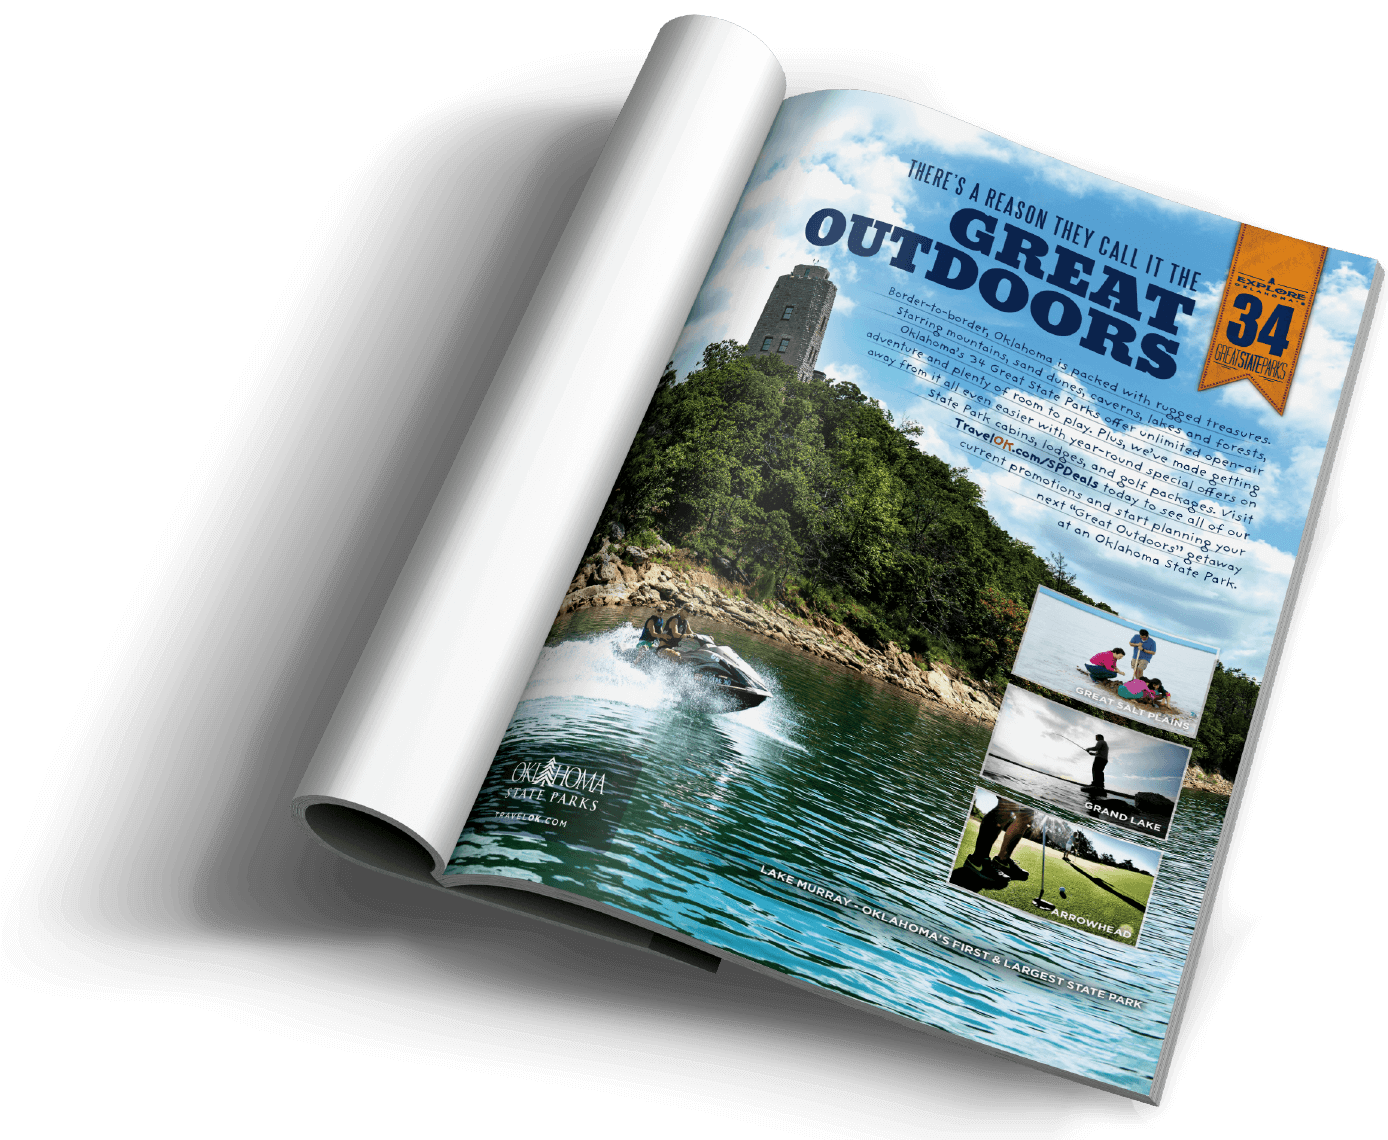 okstateparks-advert1